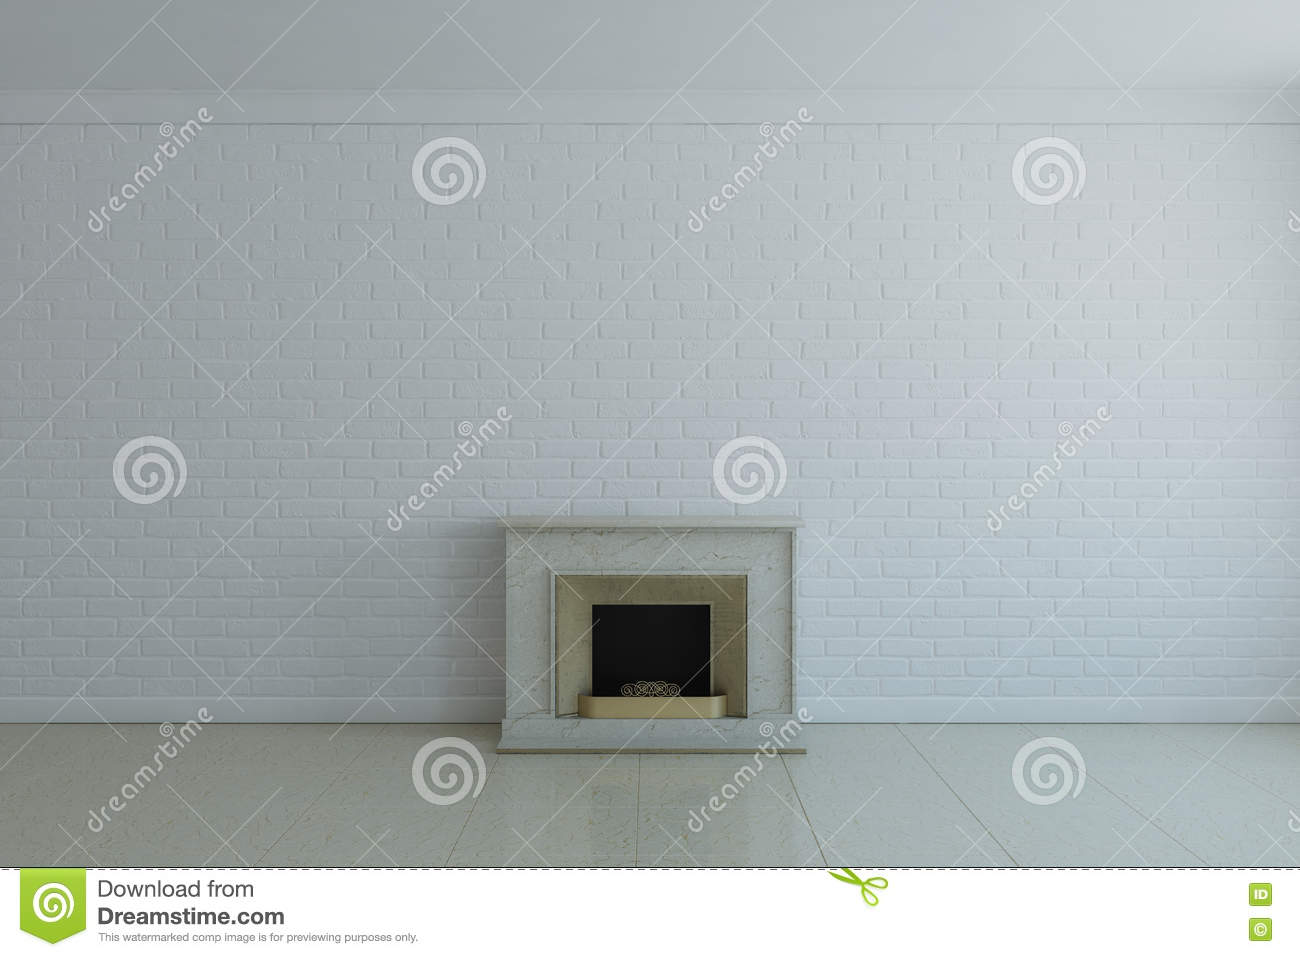 Fireplace Without Fire Stock Illustration Illustration Of City